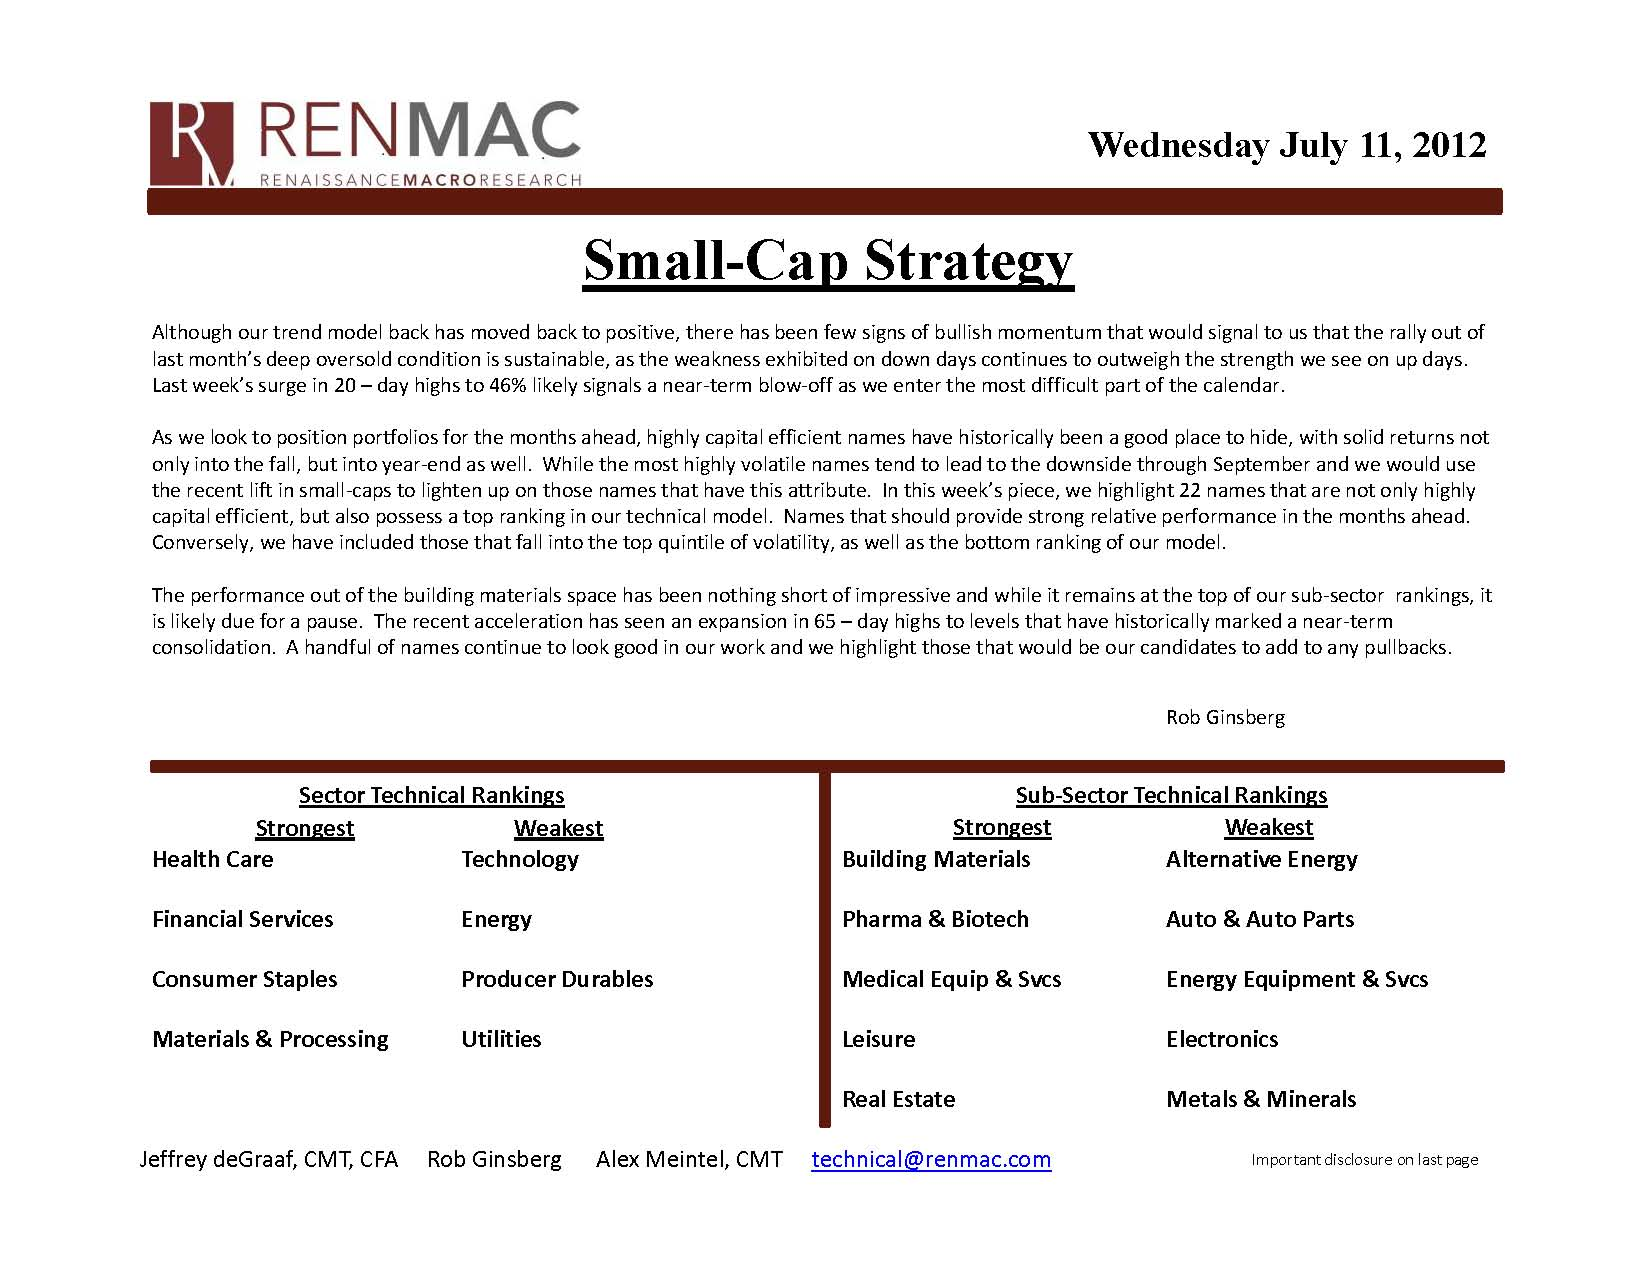 SC Strategy 07.11.12_Page_01